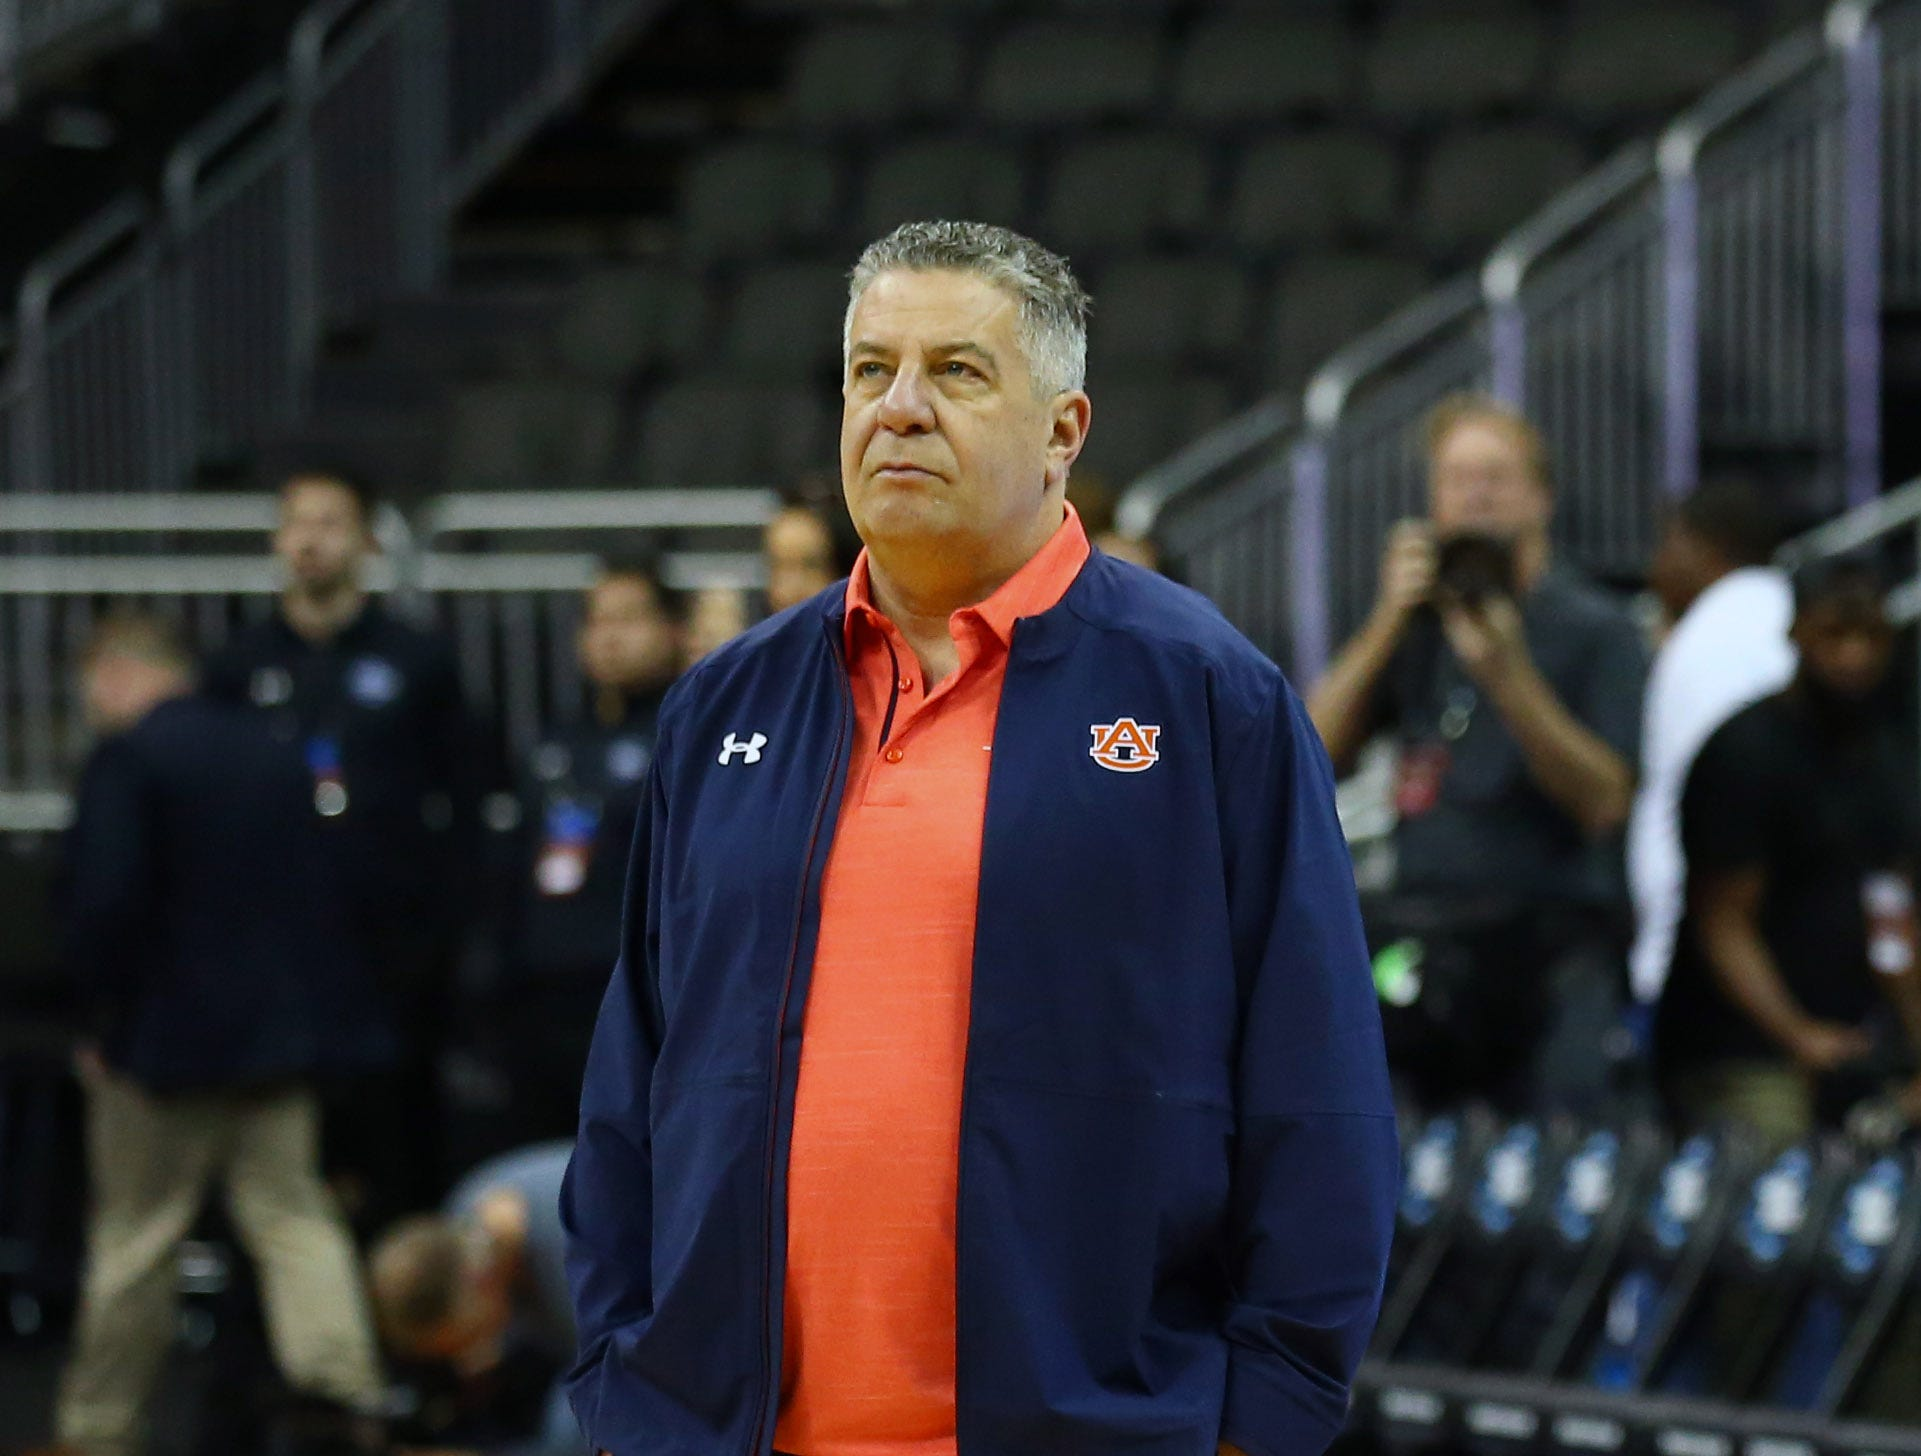 Mar 28, 2019; Kansas City, MO, United States;  Auburn Tigers head coach Bruce Pearl during practice for the midwest regional of the 2019 NCAA Tournament at Sprint Center. Mandatory Credit: Jay Biggerstaff-USA TODAY Sports